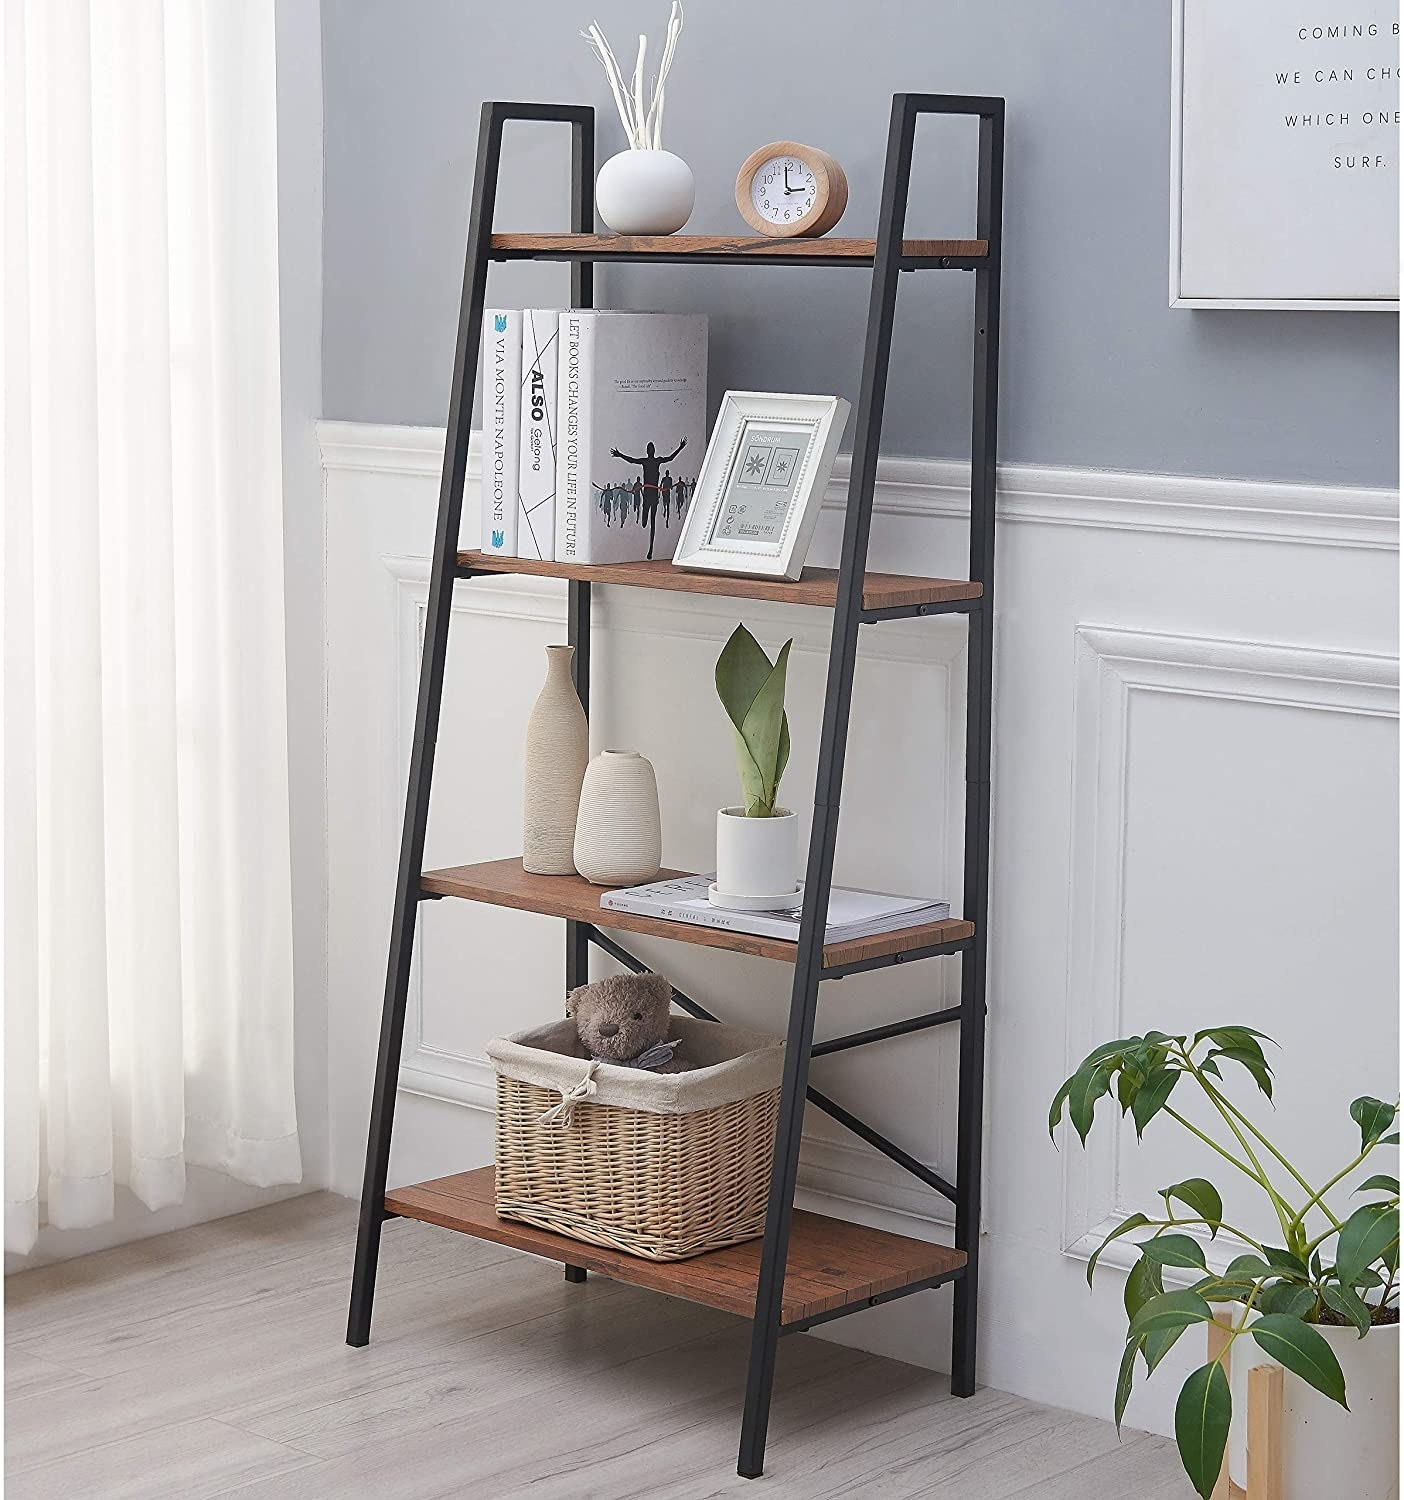 Black and wood ladder shelf with books, trinkets, and storage baskets